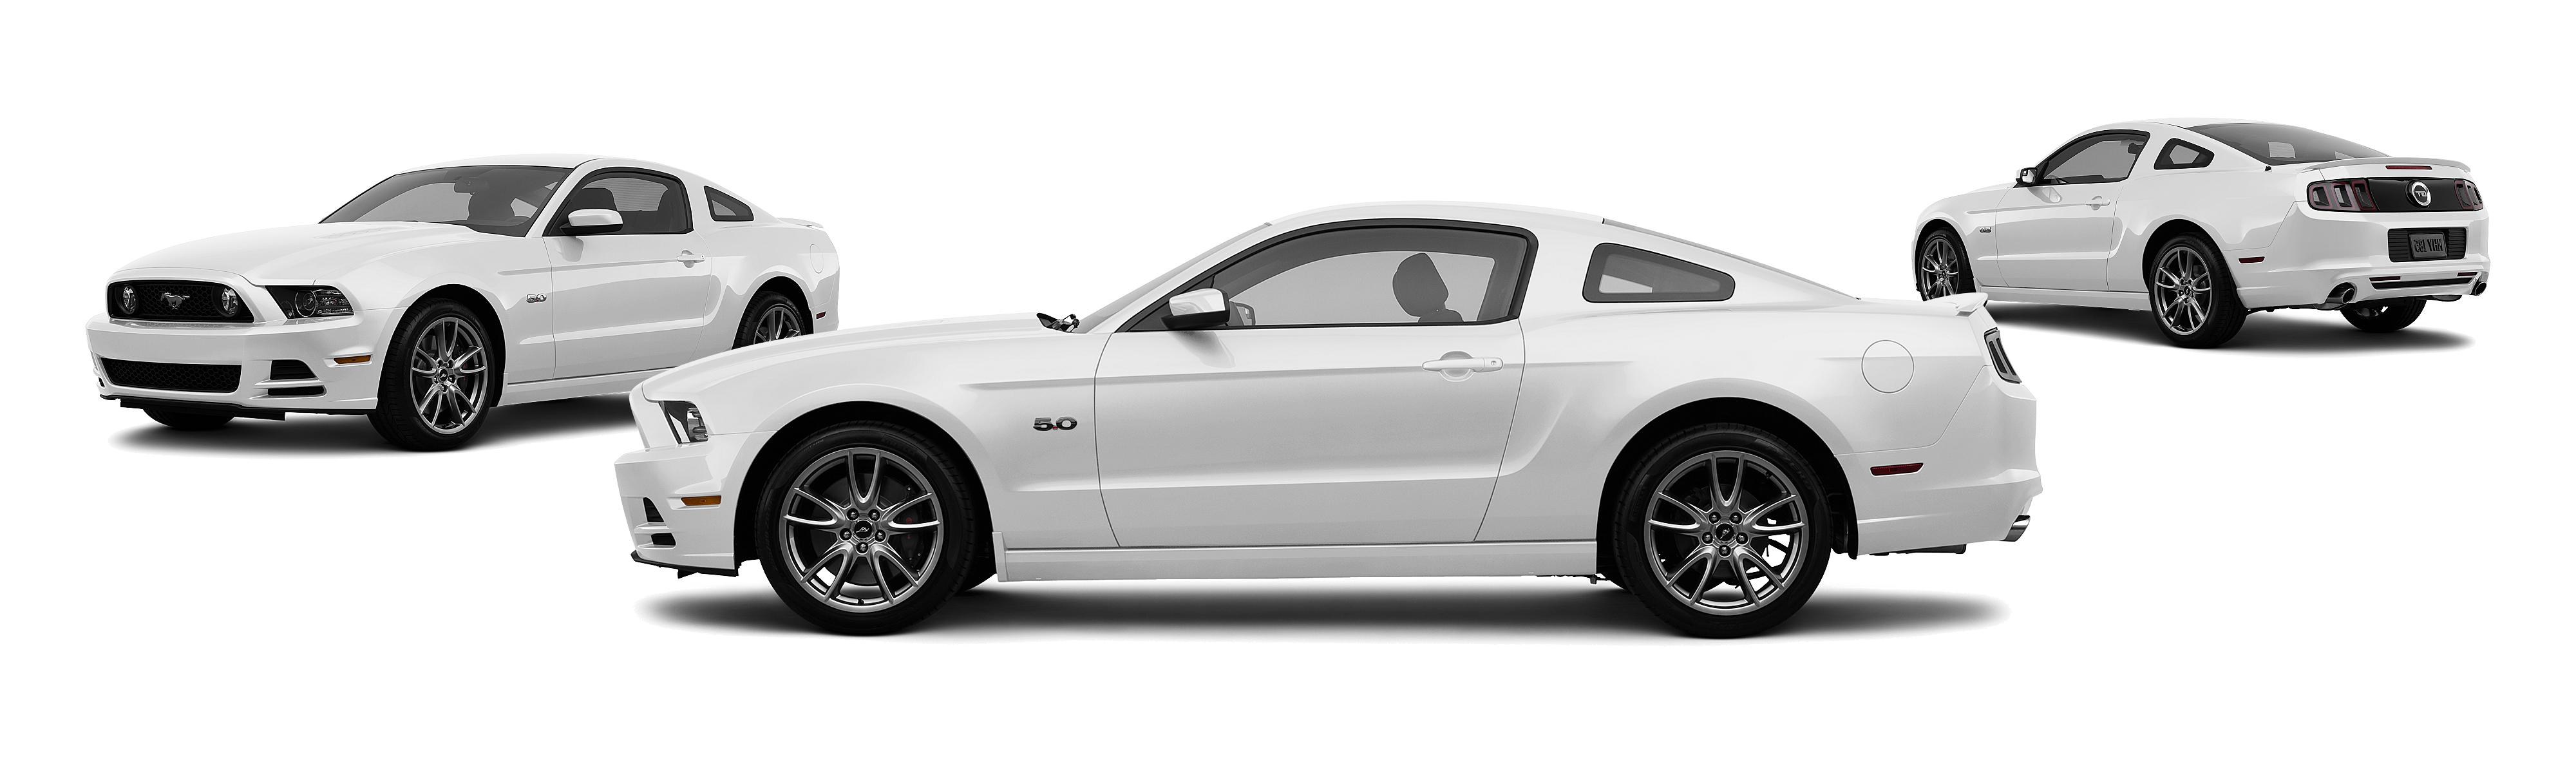 2013 Ford Mustang GT 2dr Fastback Research GrooveCar